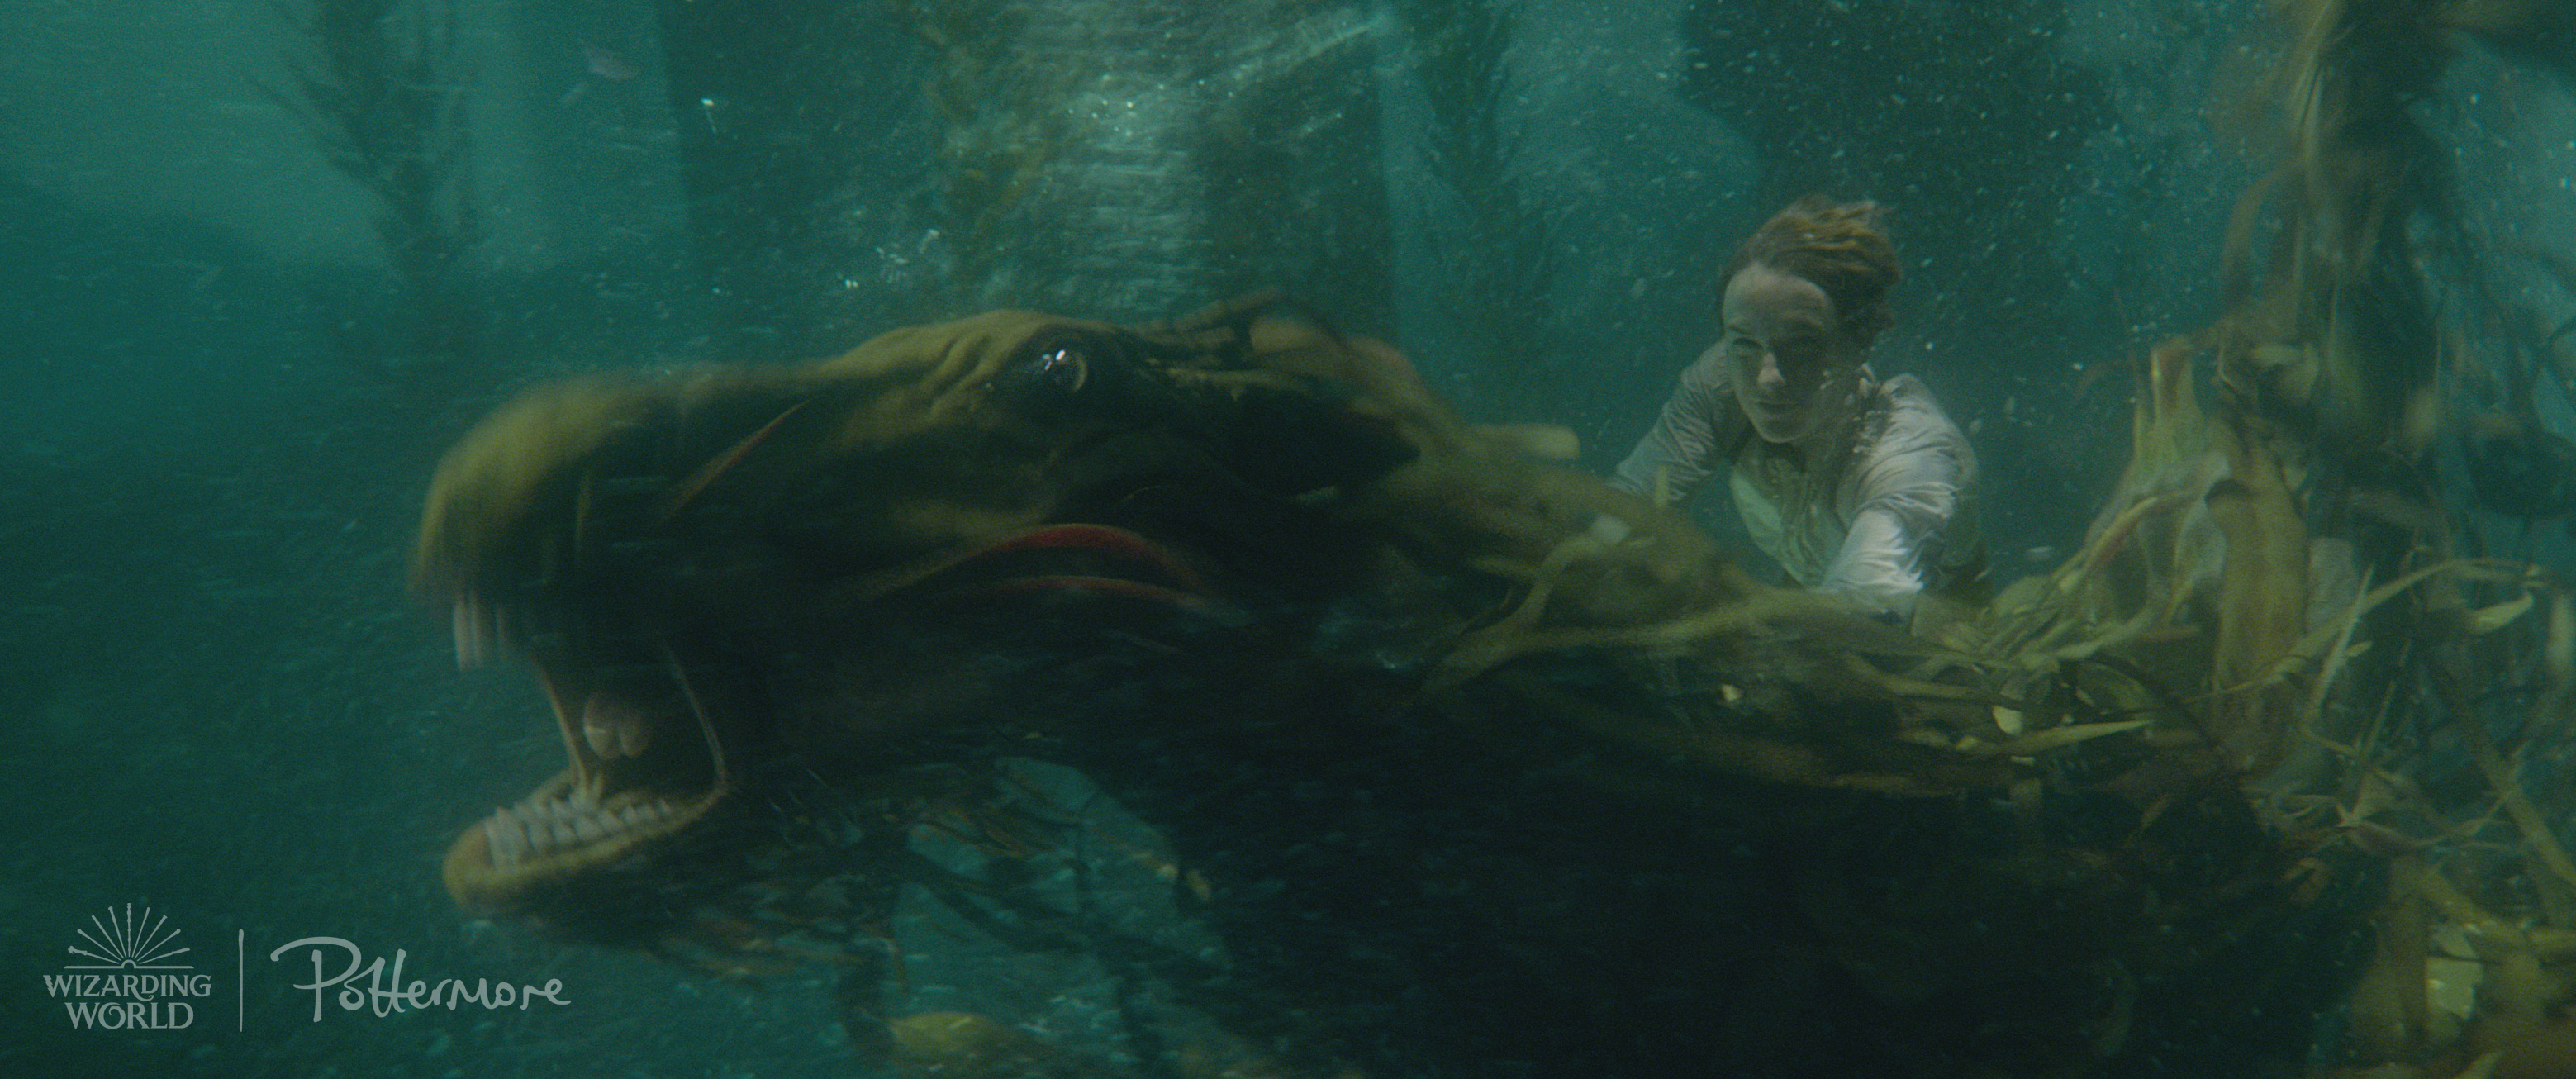 Newt underwater from the Fantastic Beasts: Crimes of Grindelwald trailer